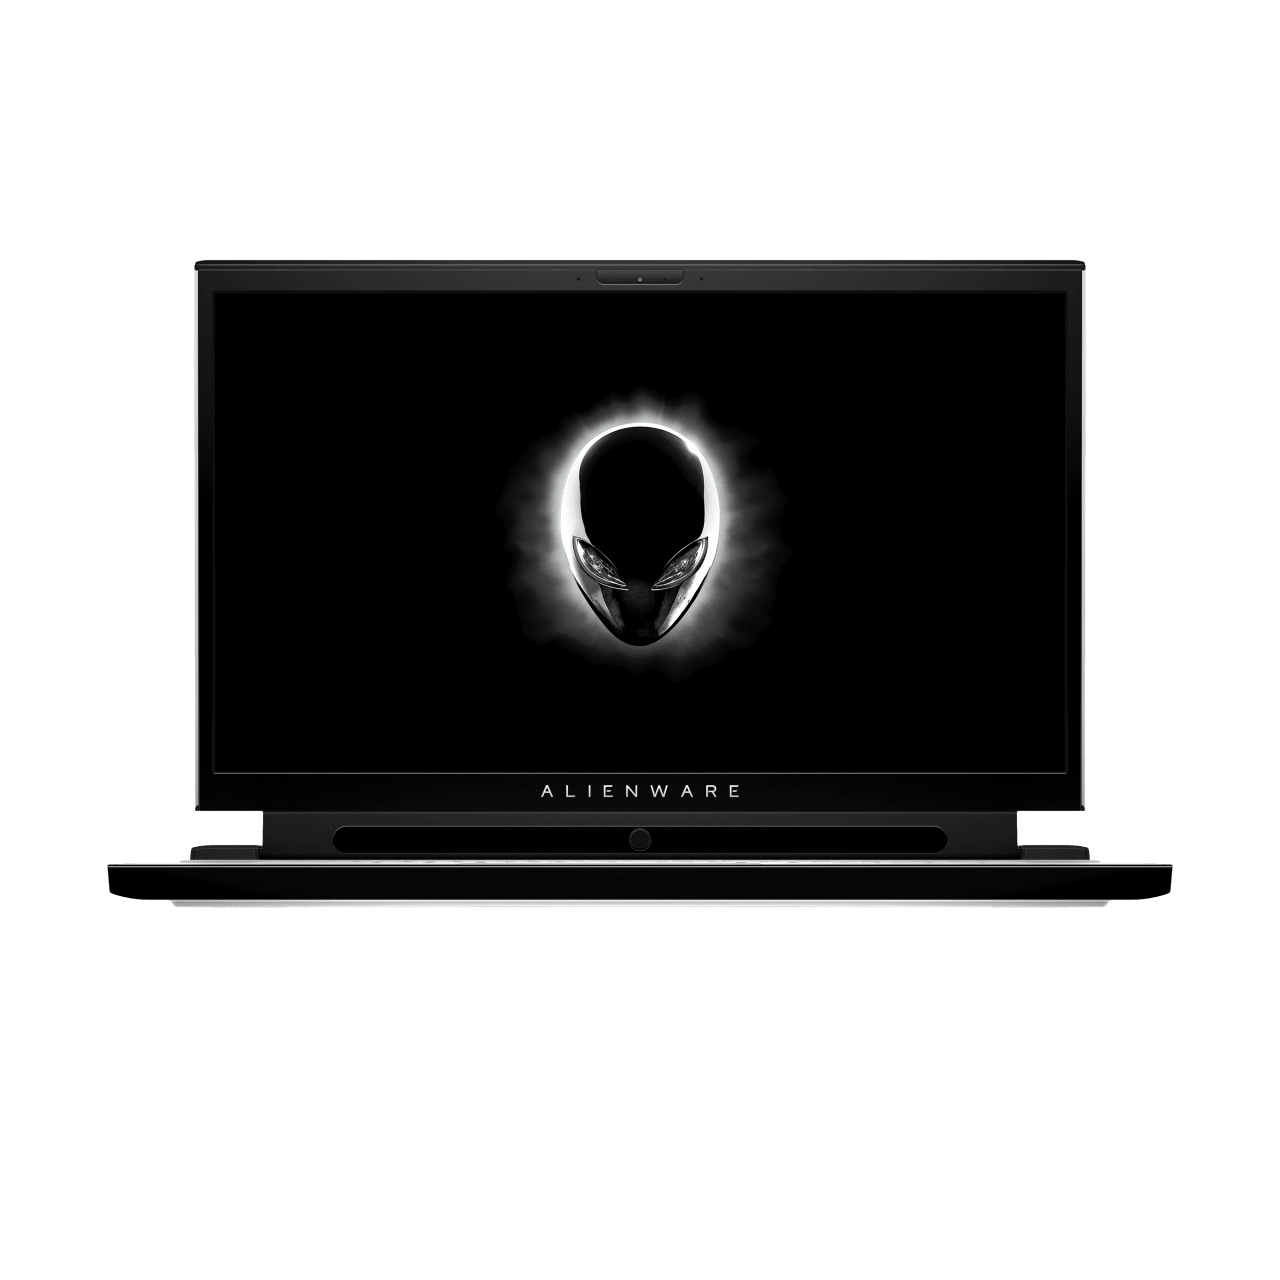 Black / White Alienware M15 R2.1